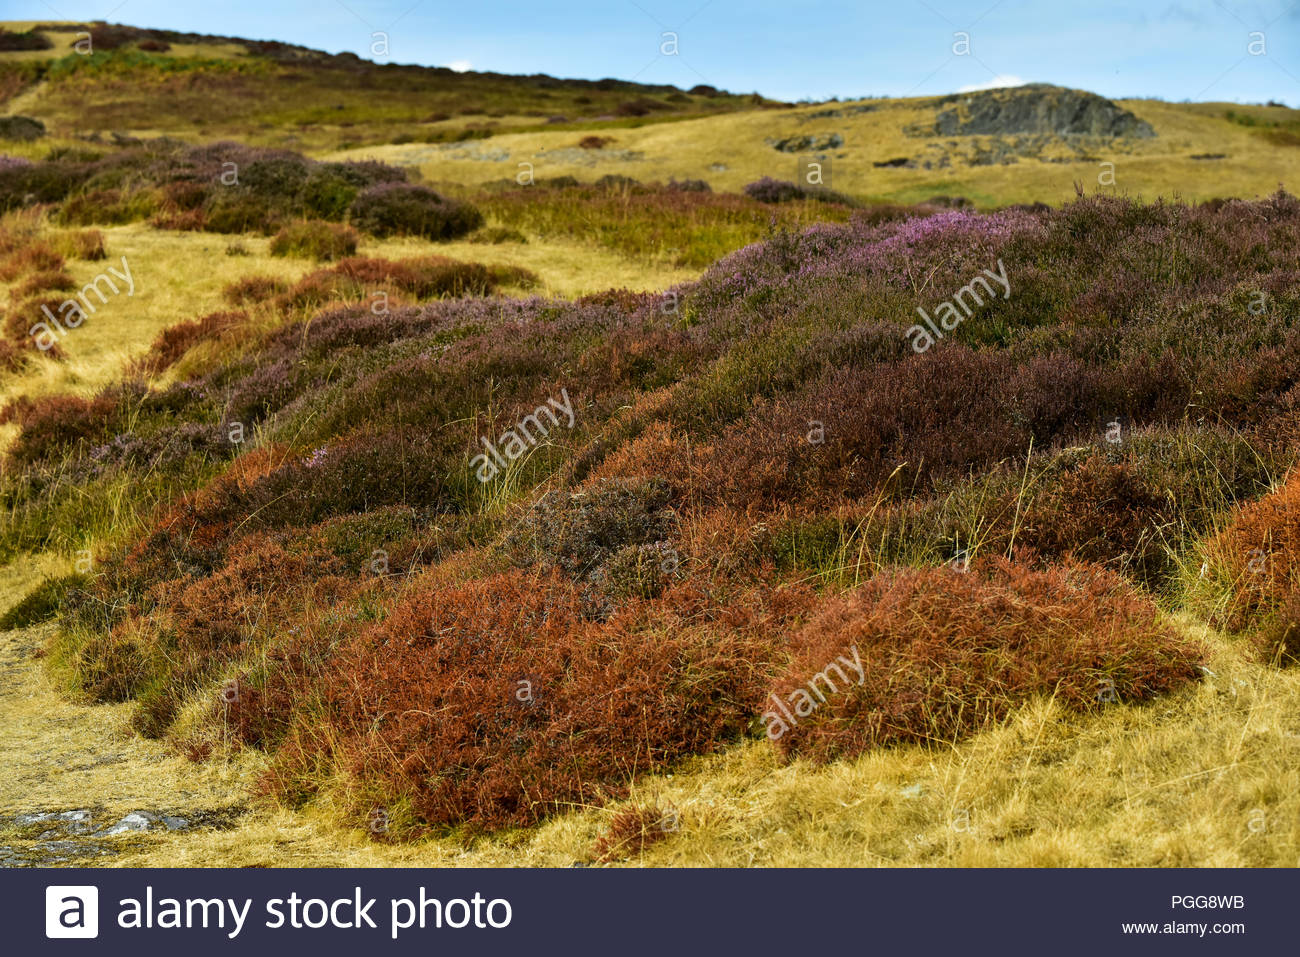 Parched heather on the Long Mynd hill in Shropshire, England, UK. - Stock Image